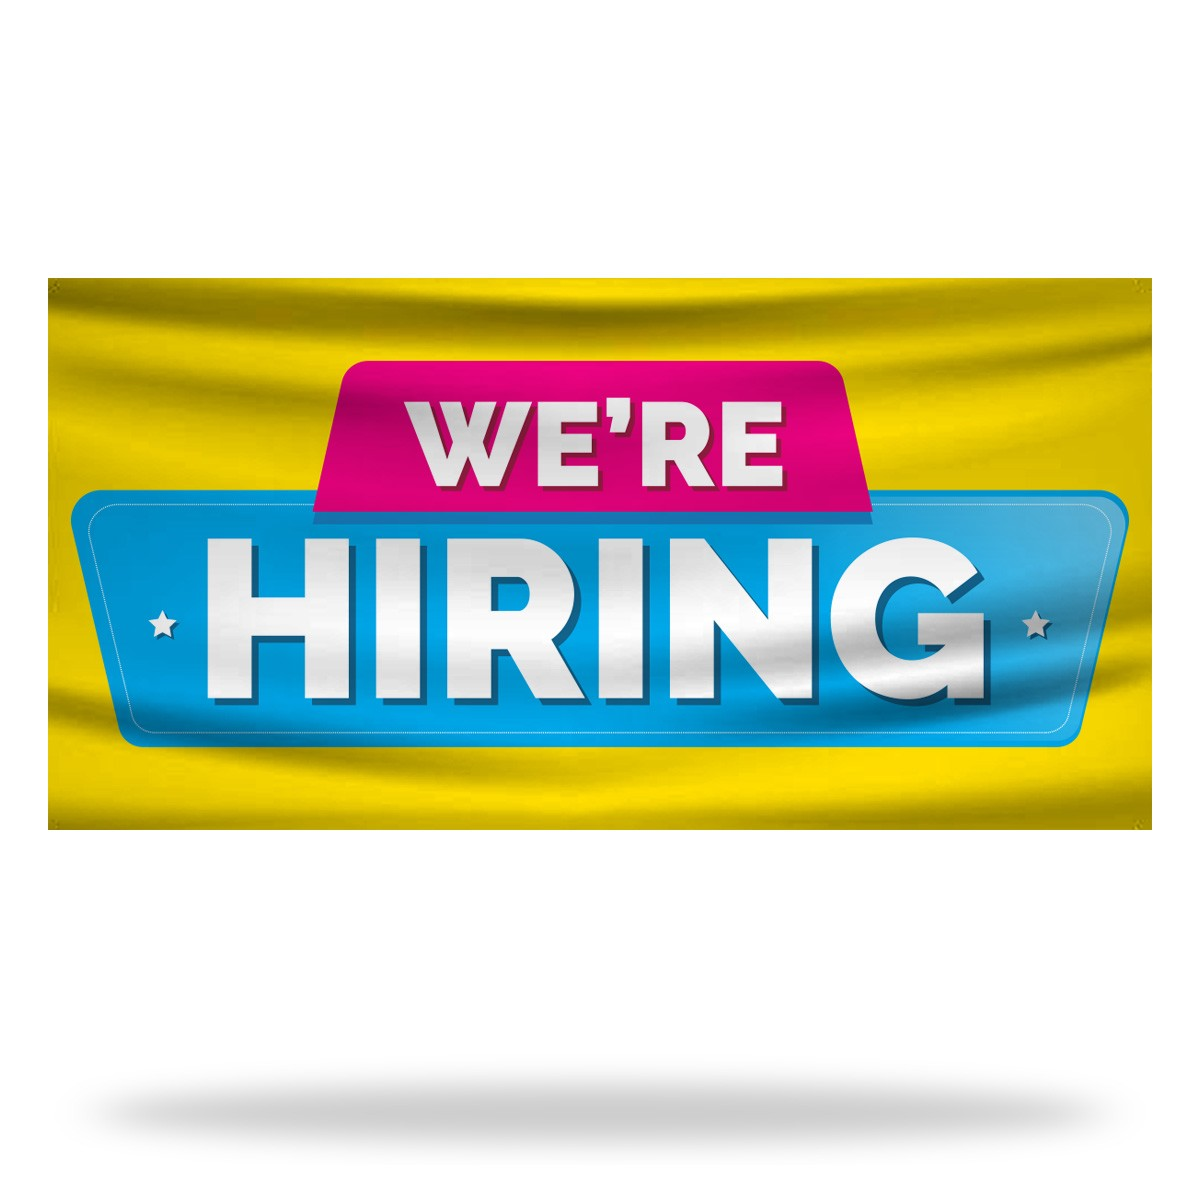 Now Hiring Flags & Banners Design 07